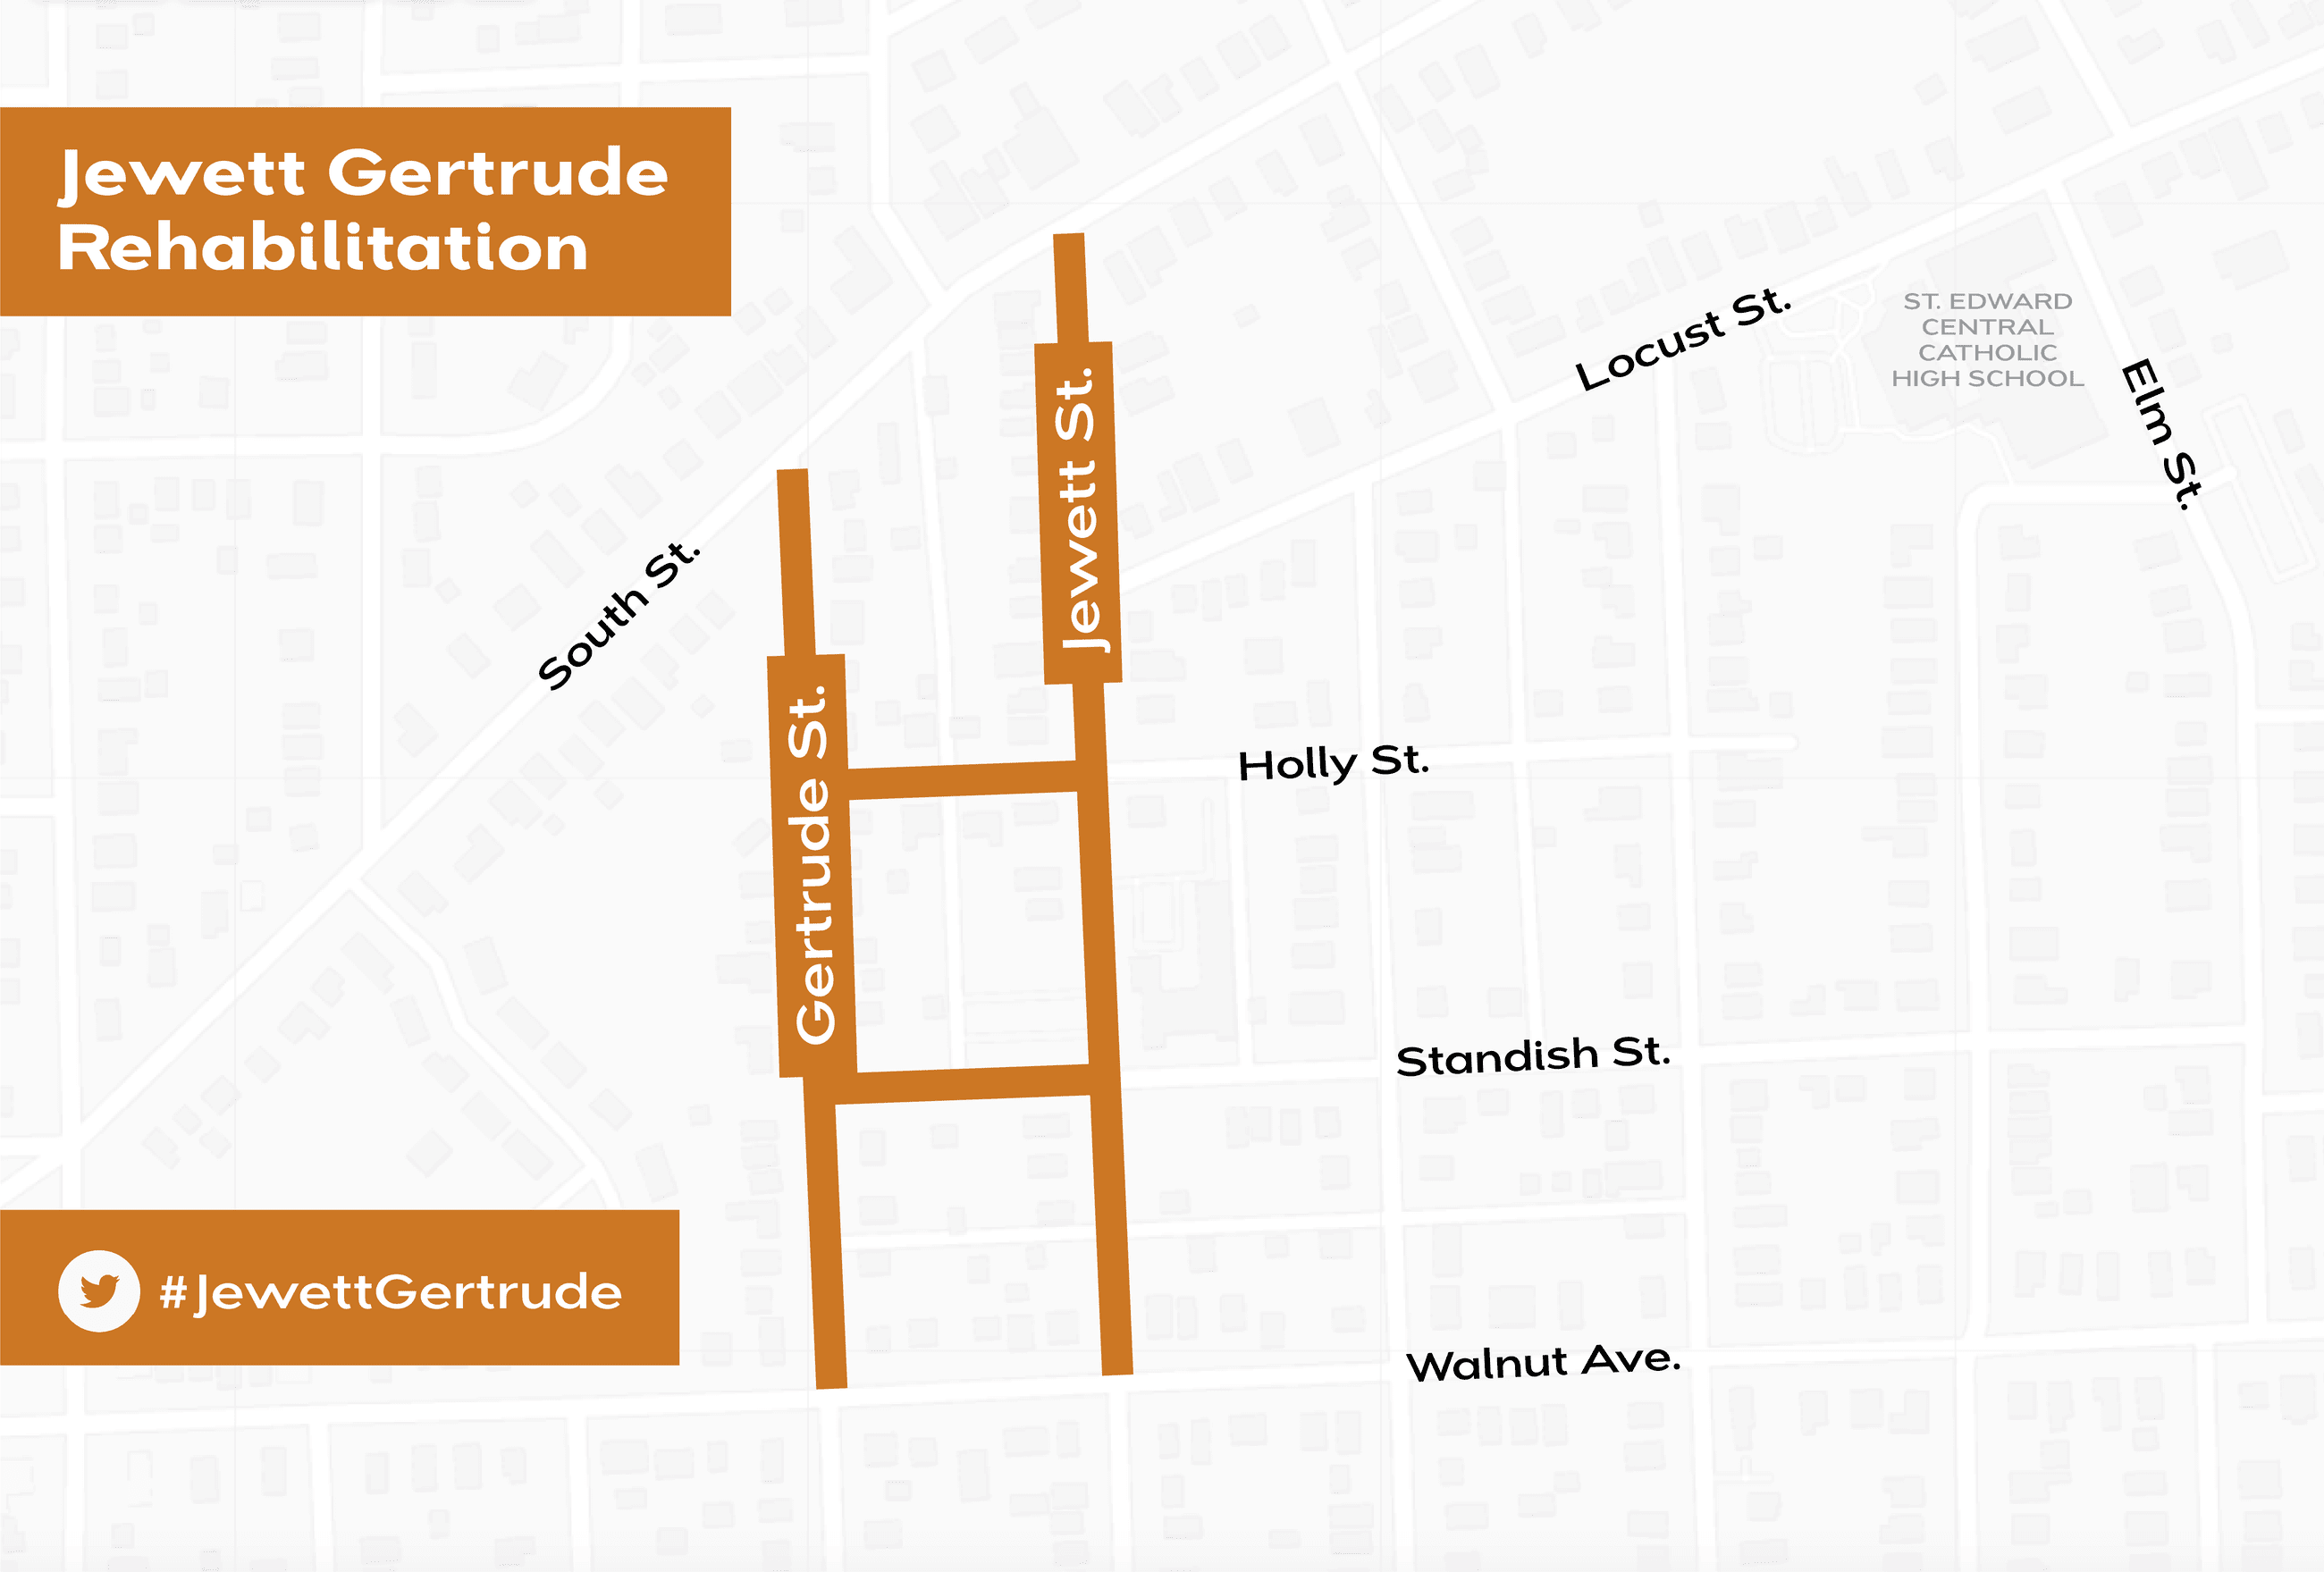 Jewett Gertrude rehabilitation project map